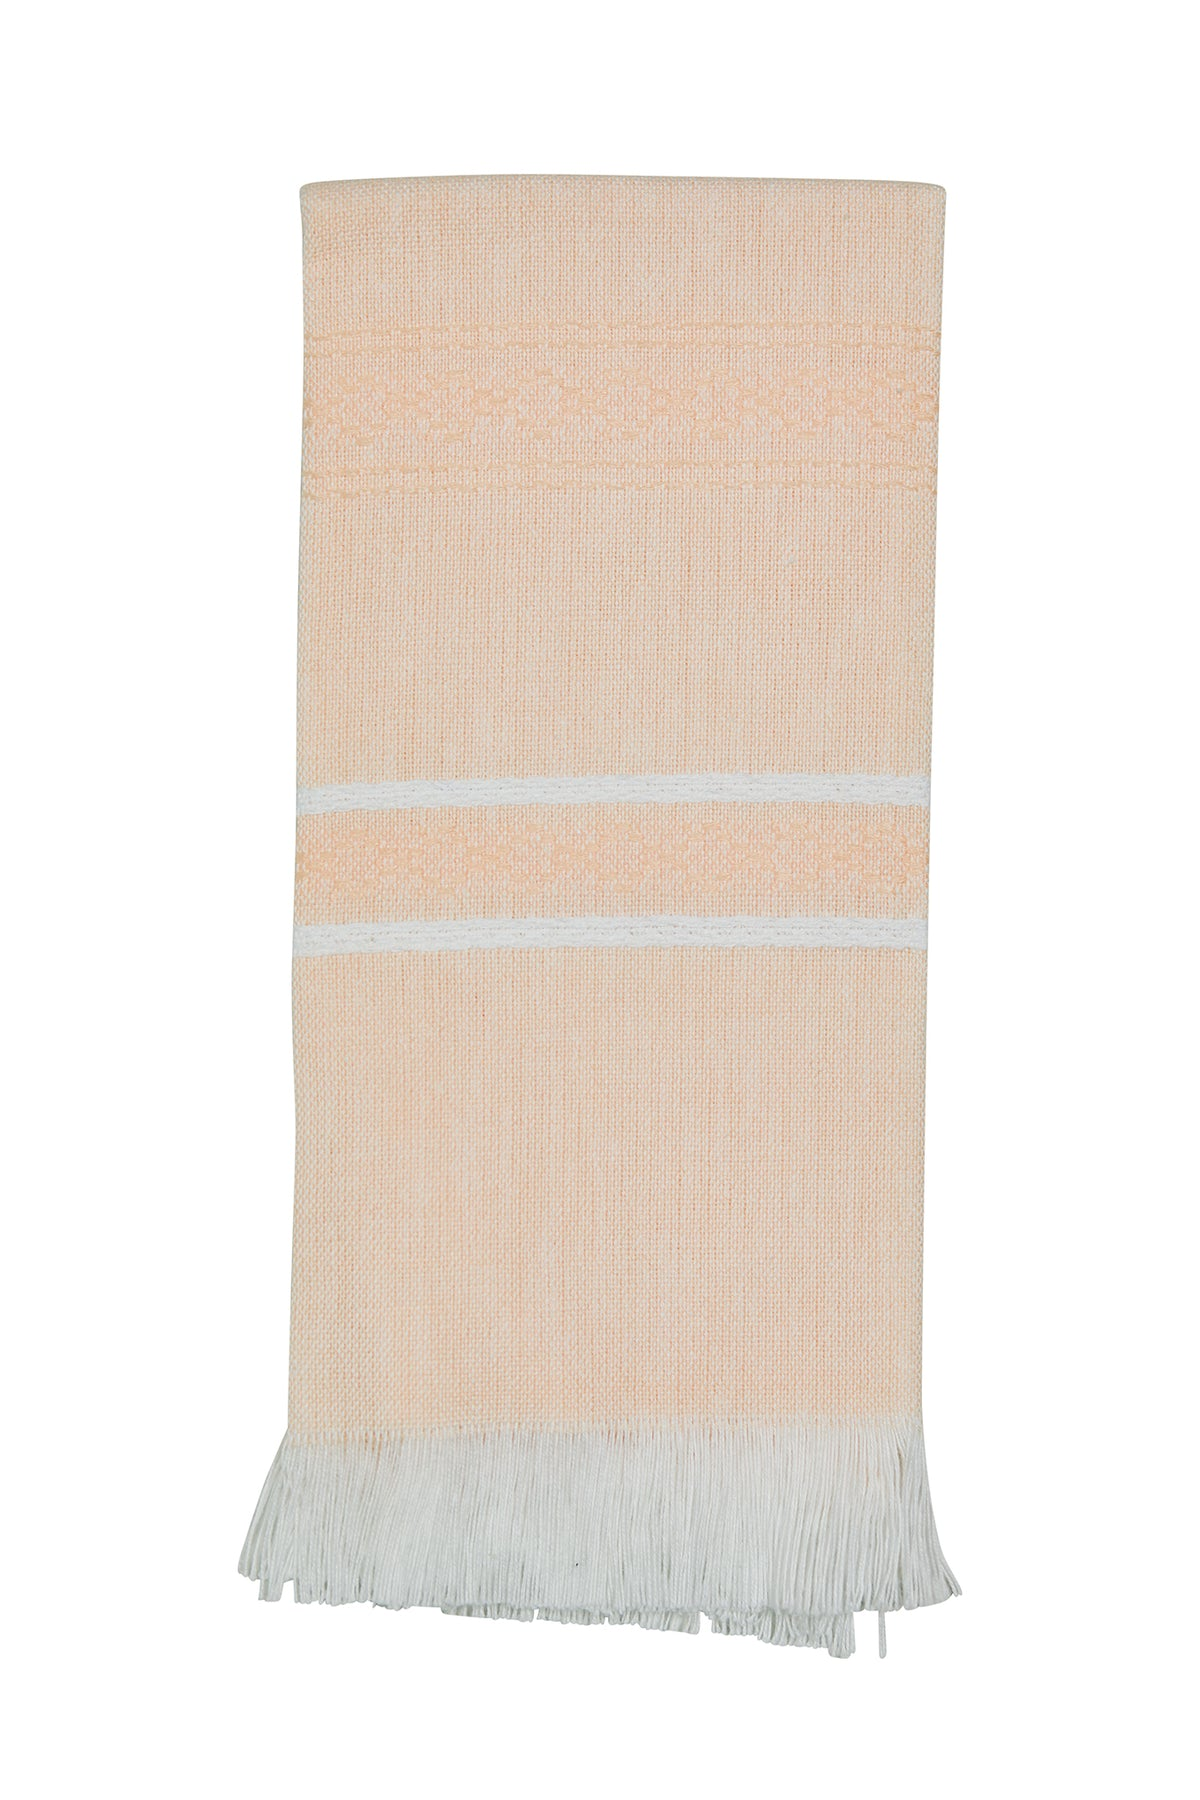 All Cotton Hand Woven Towel ~ Peach